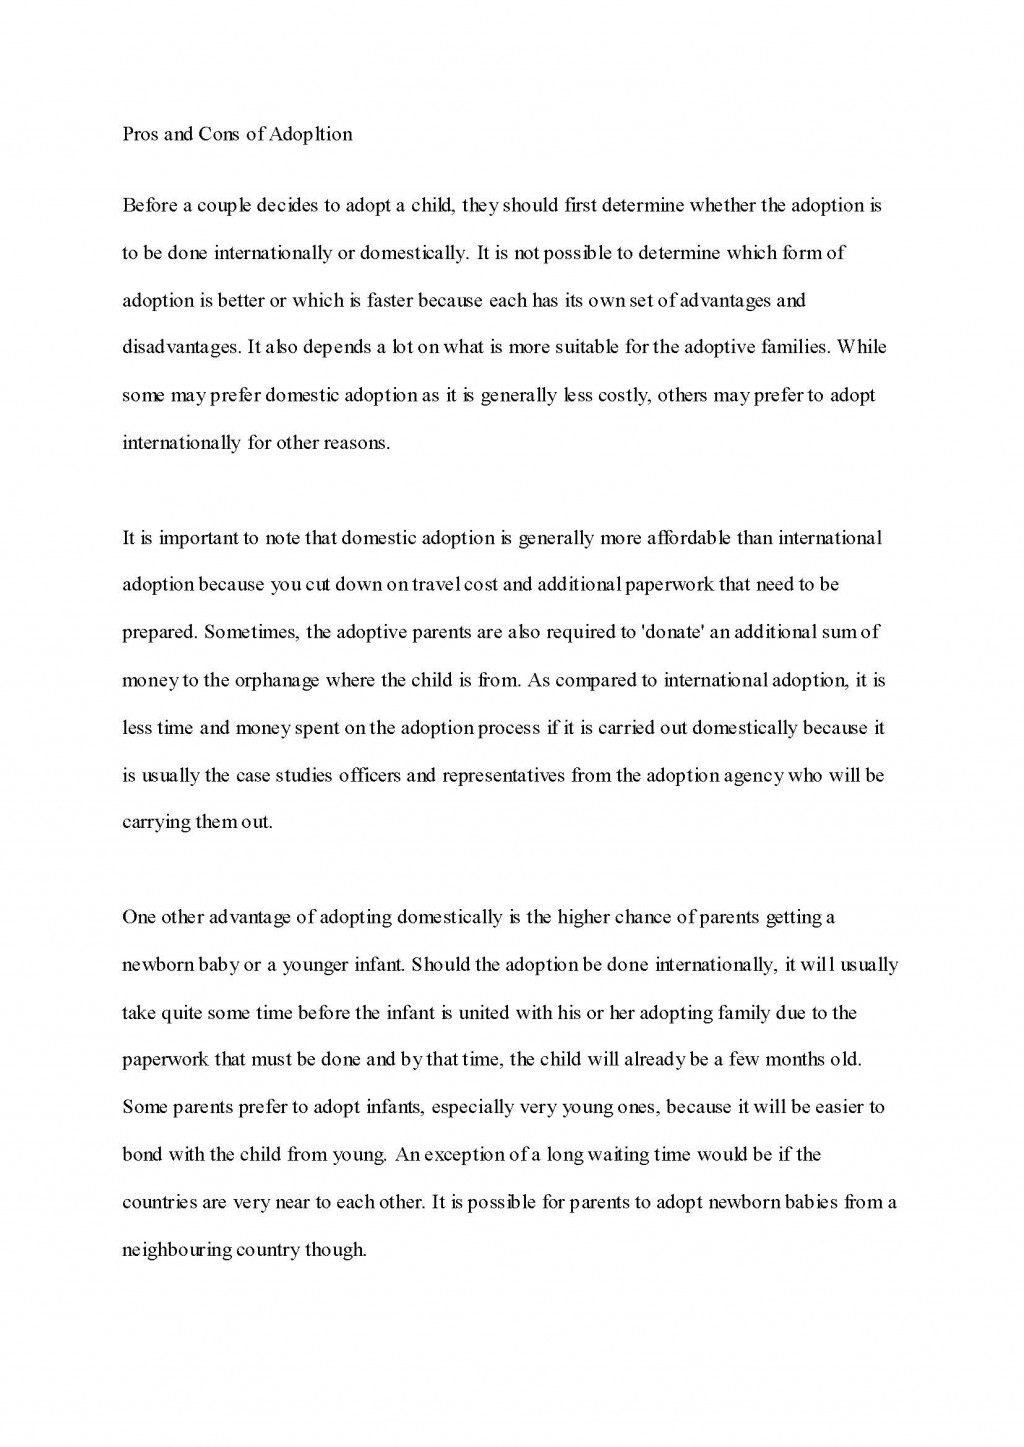 020 Courage Essays Essay Example Adoption Outstanding Mother And Heroism Moral Examples Large